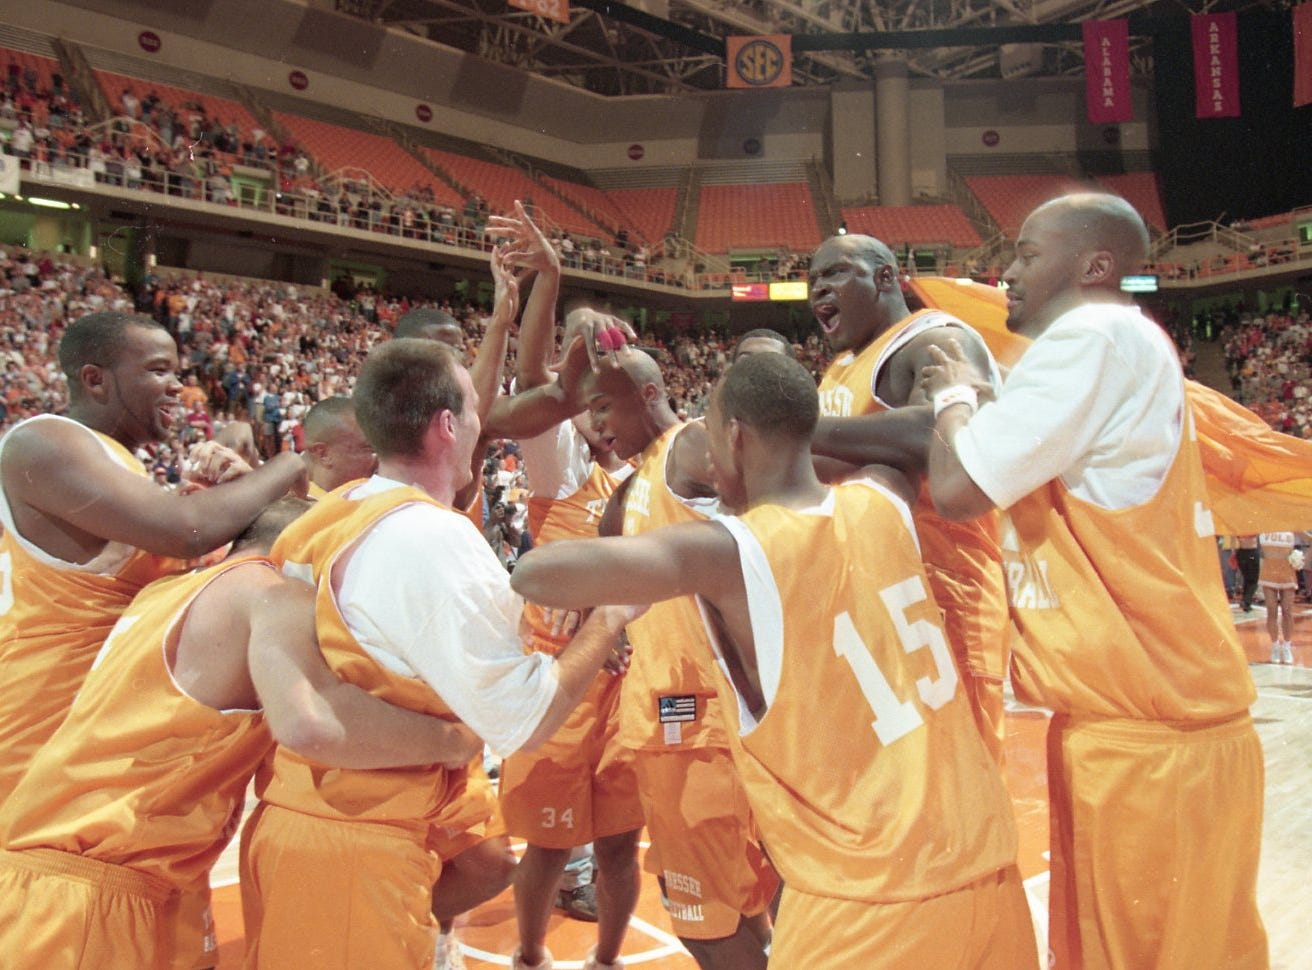 The spirited crowd at Midnight Madness inspired the 1998-1999 Tennessee men's basketball team as they got fired up for the evening events in October 1998.